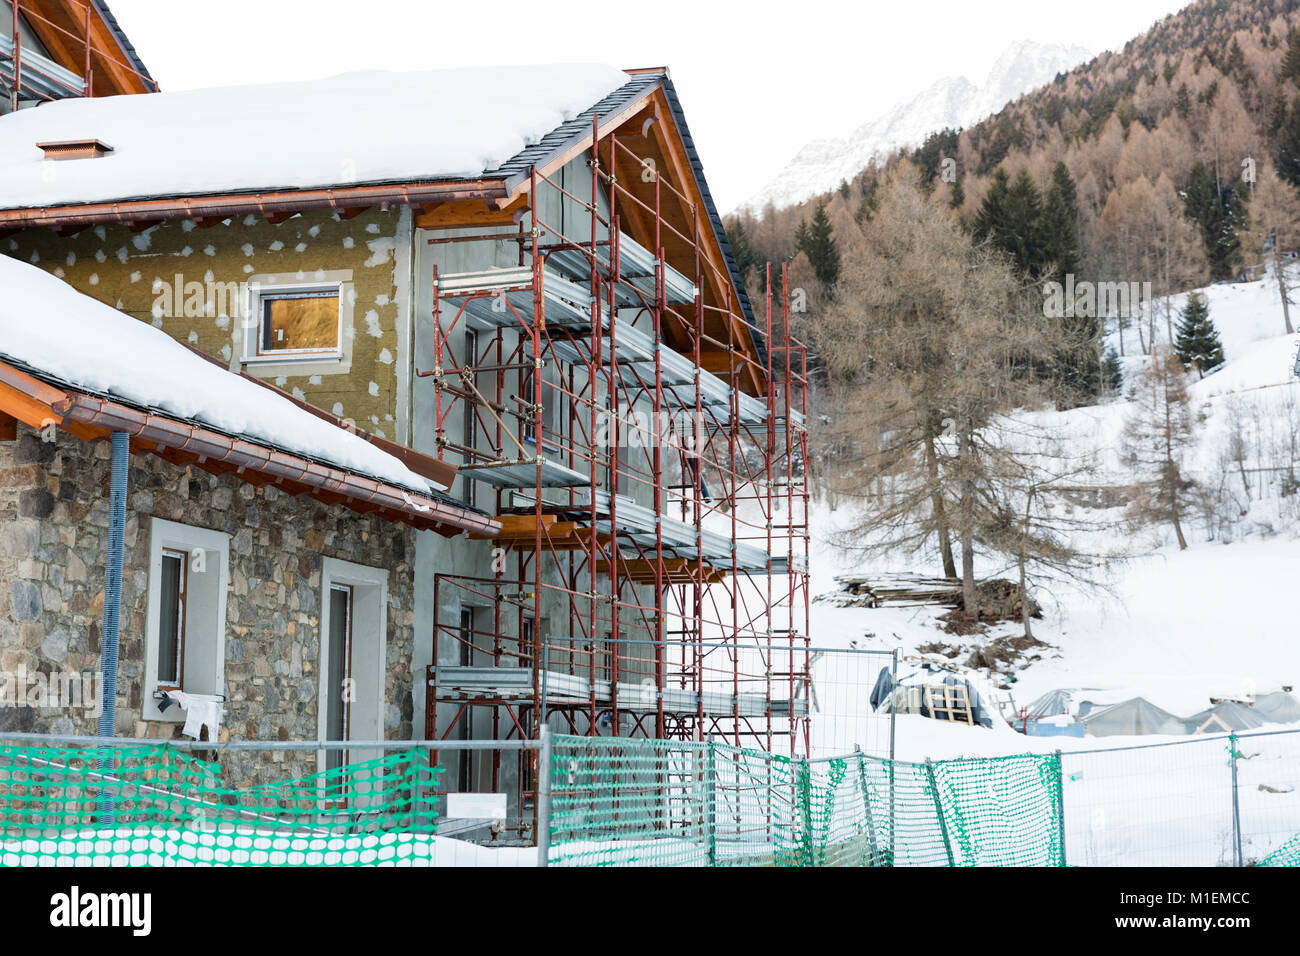 Construction of hotel or tourist apartment at ski resort in Italy, Alps - Stock Image